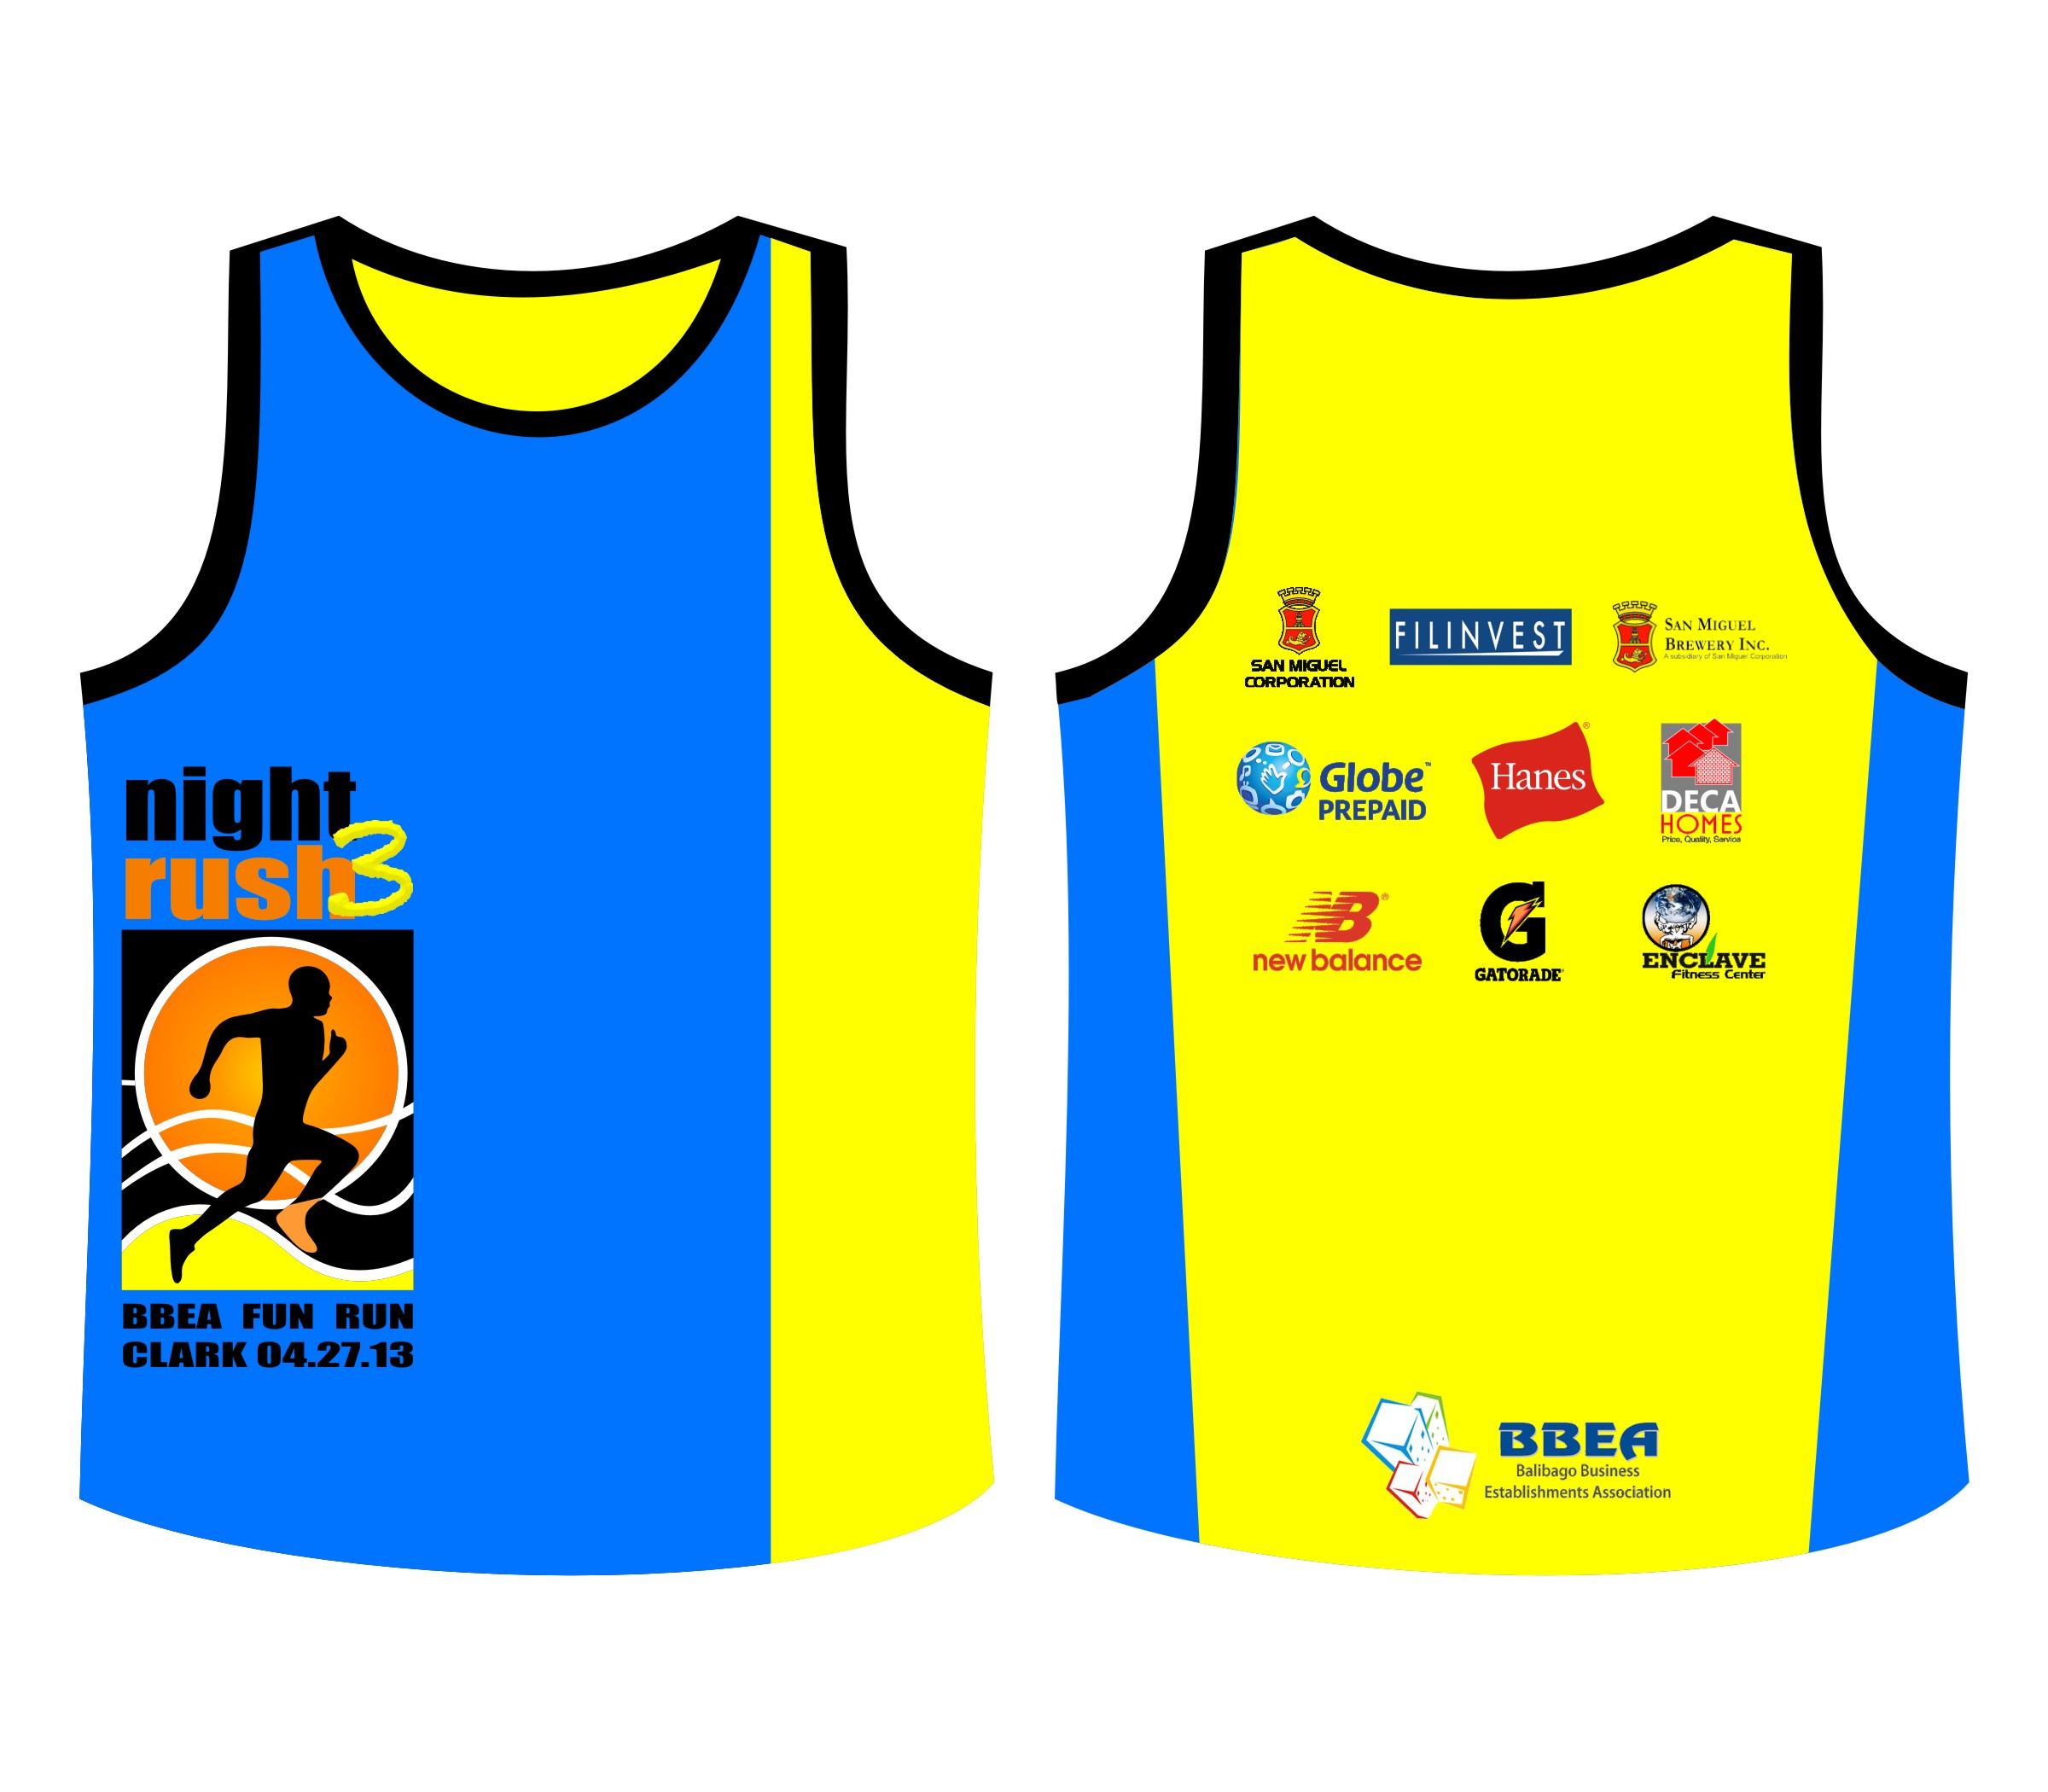 night-rush-3-2013-singlet-design